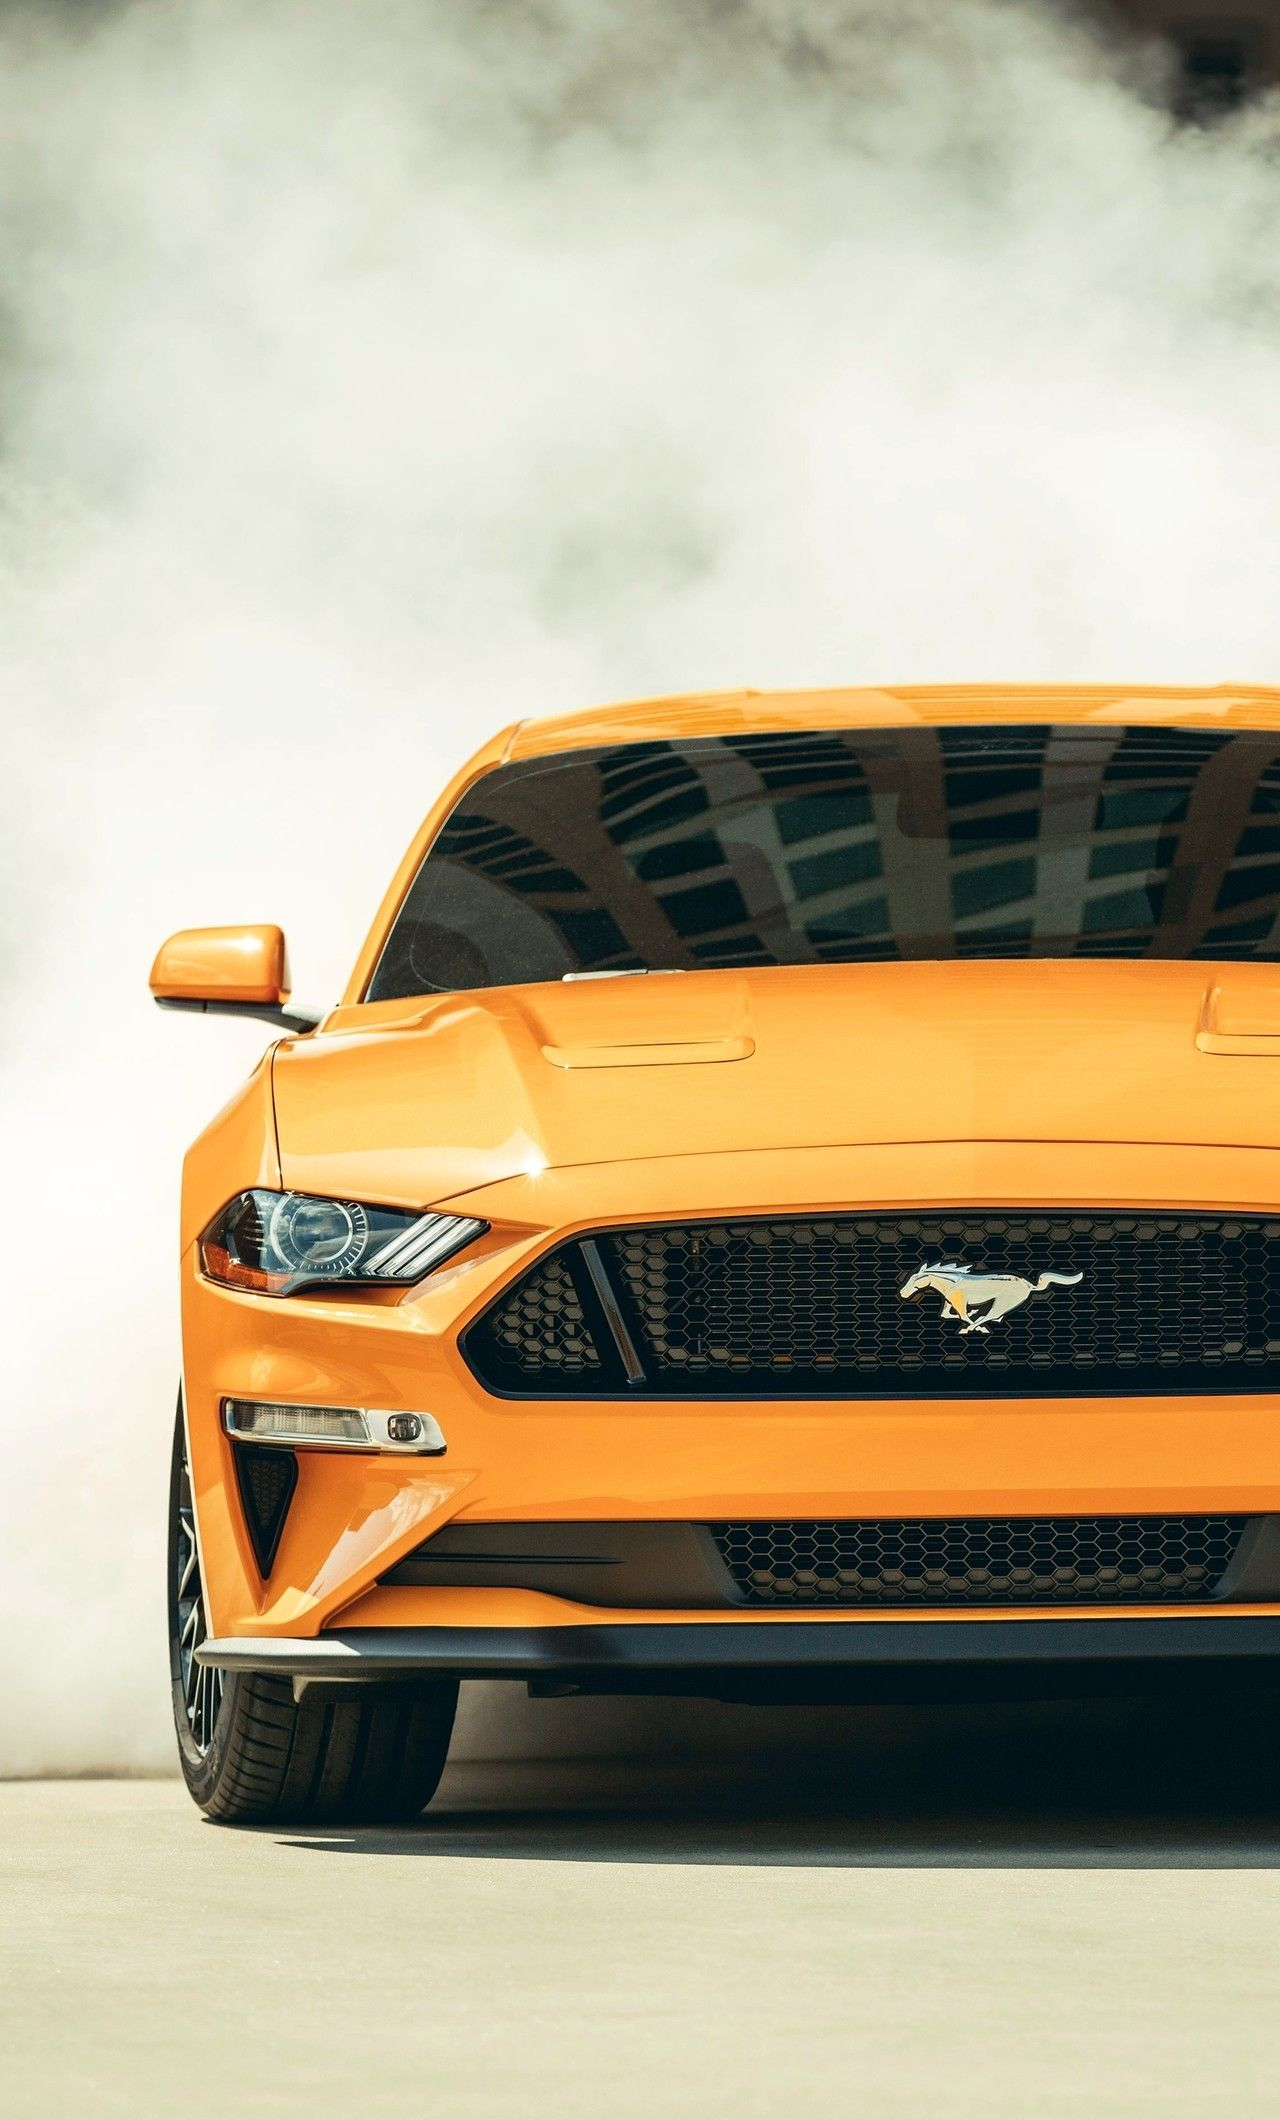 Mustang iPhone Wallpapers   Top Mustang iPhone Backgrounds 1280x2120